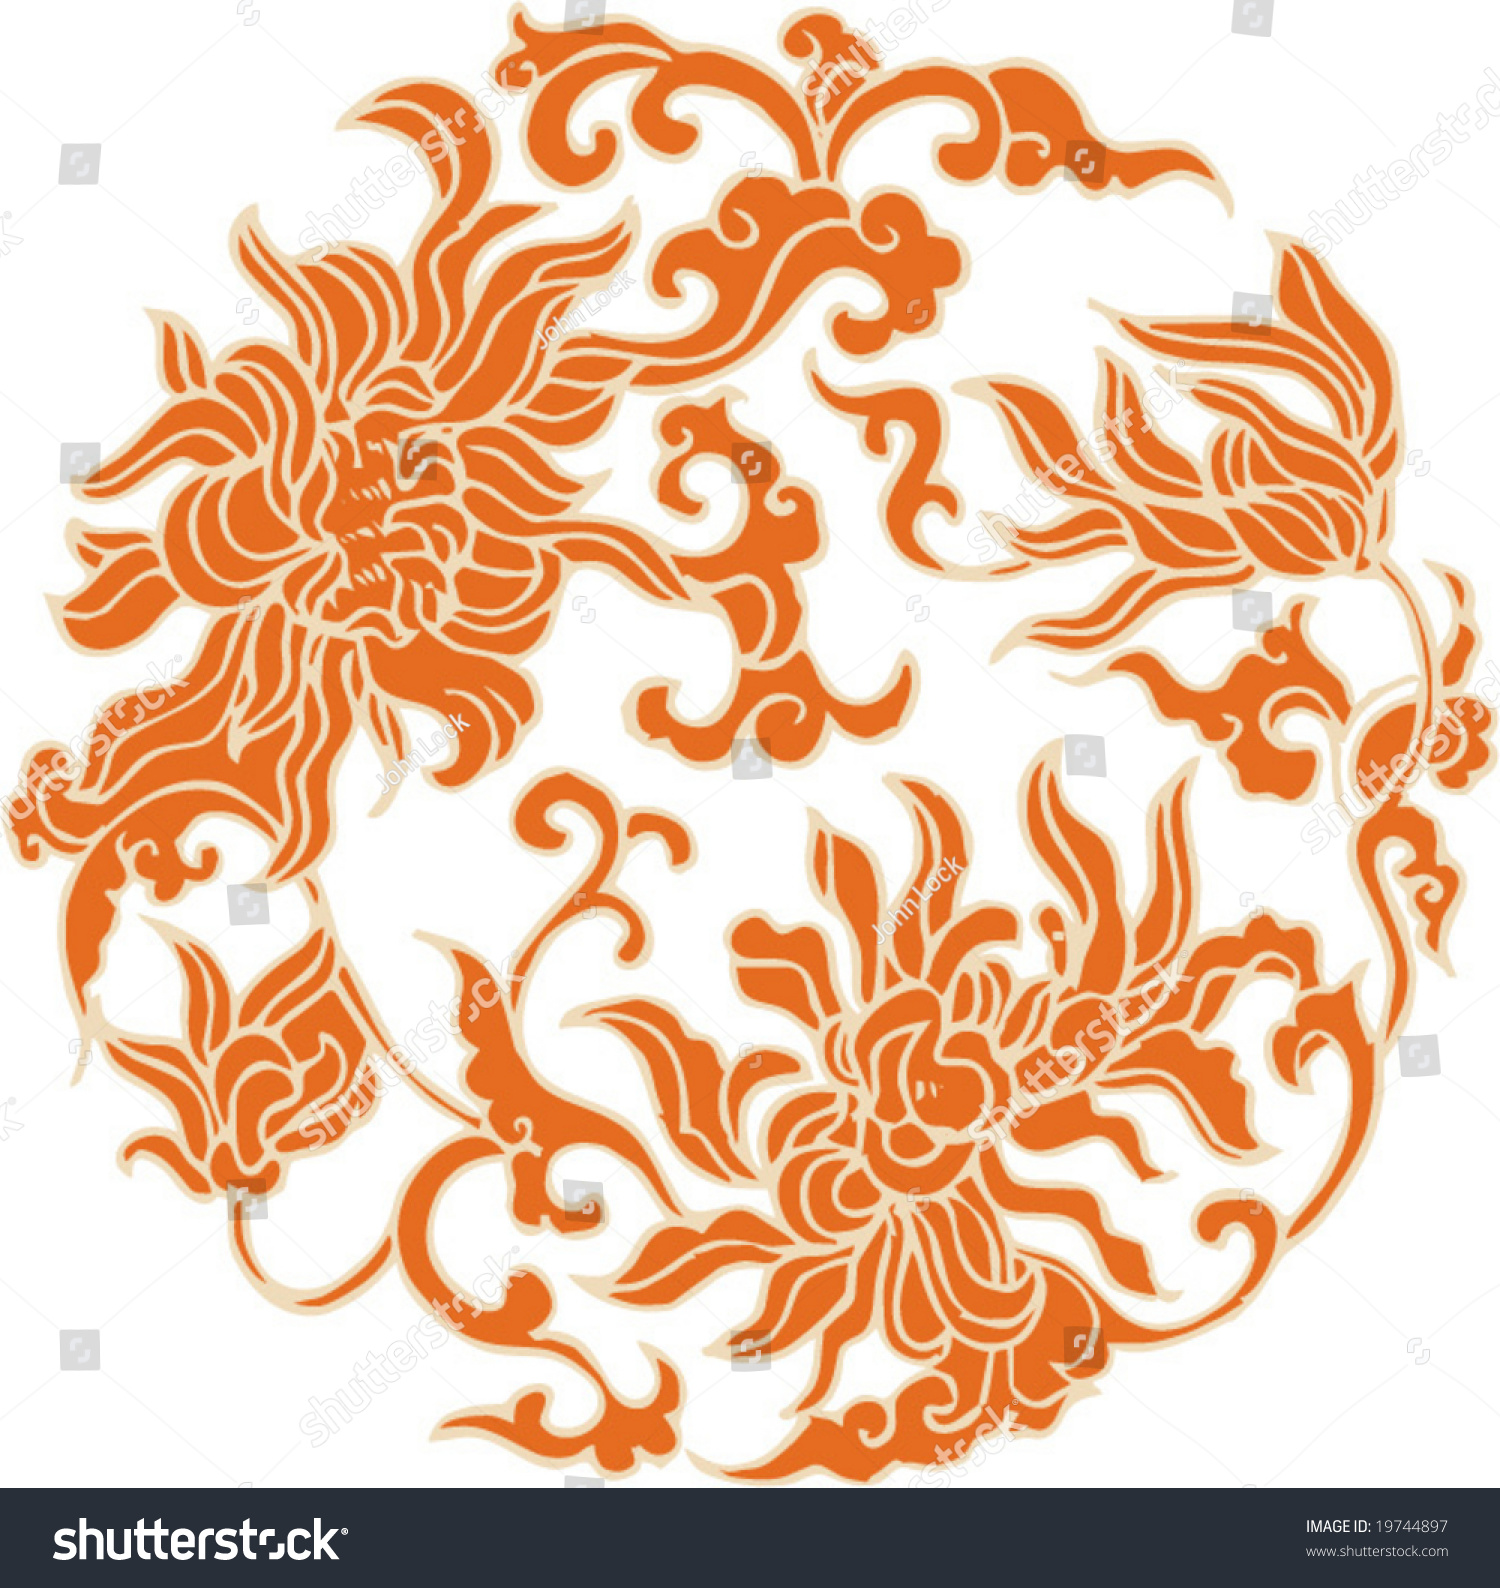 Traditional Chinese Patterns And Designs